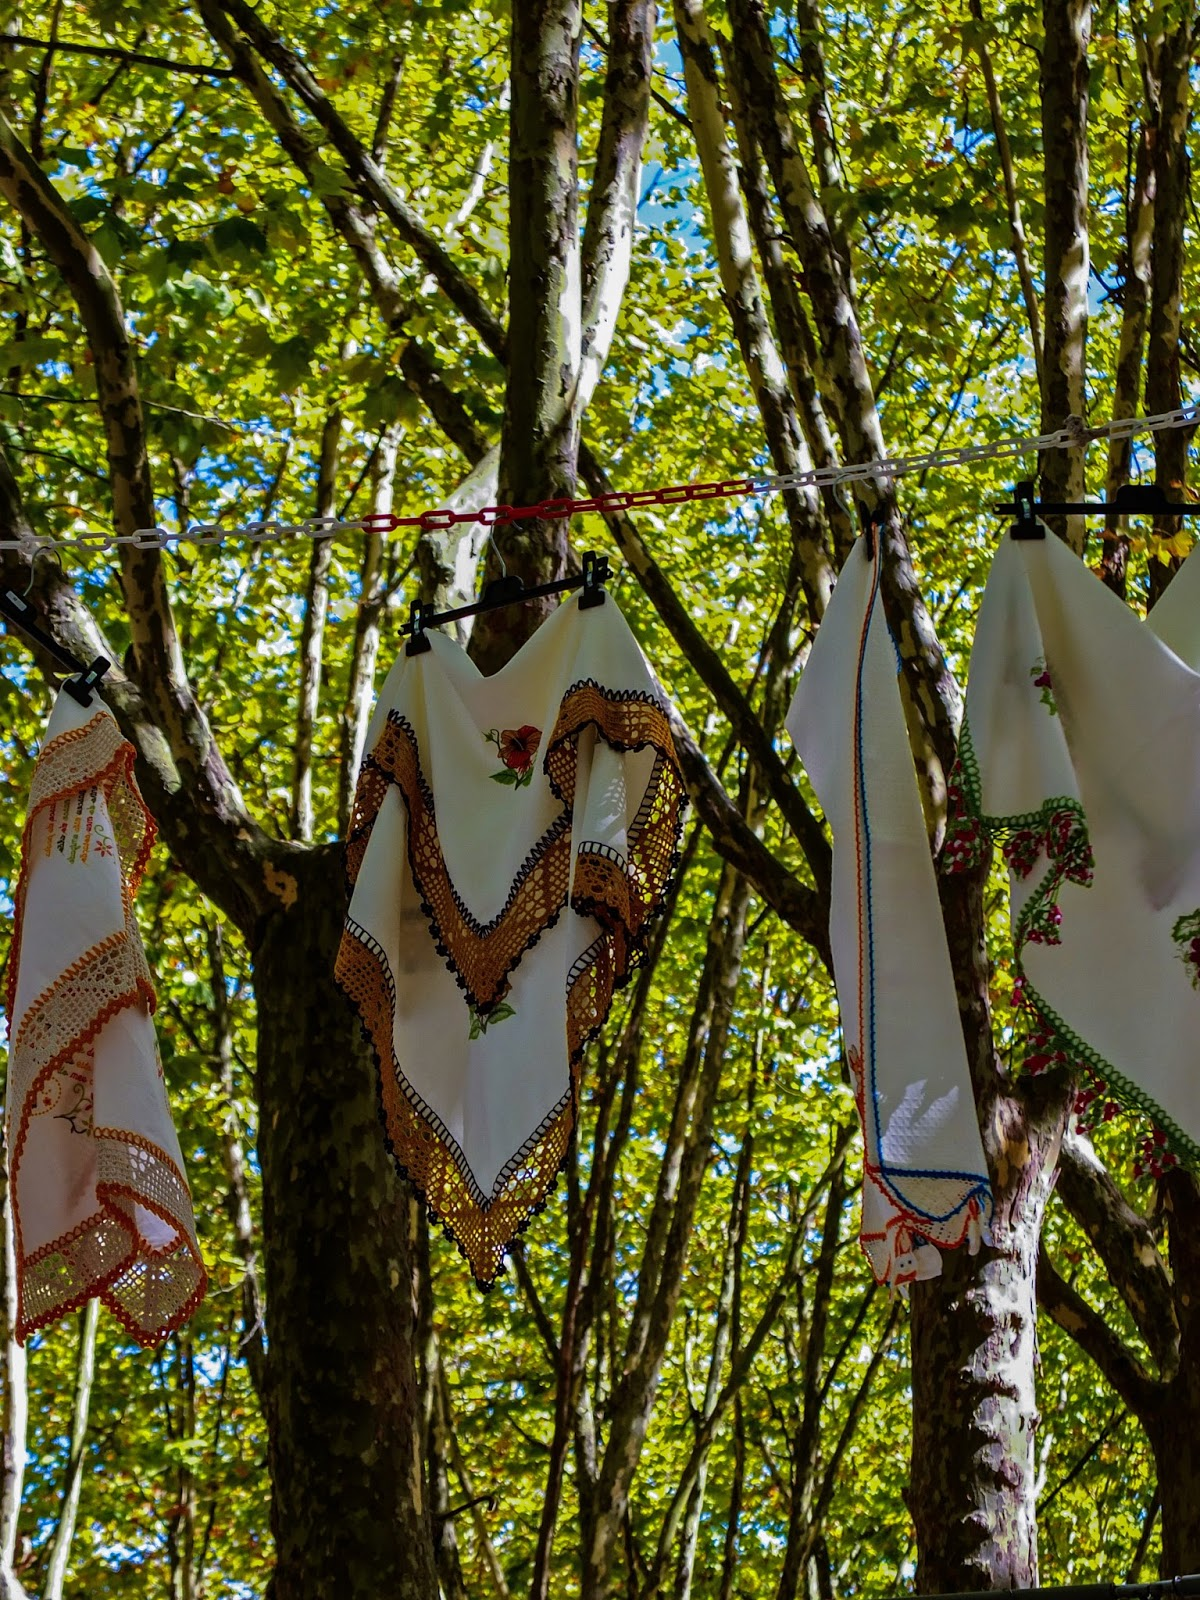 Handmade cloths hanging between trees at a market in Porto, Portugal.